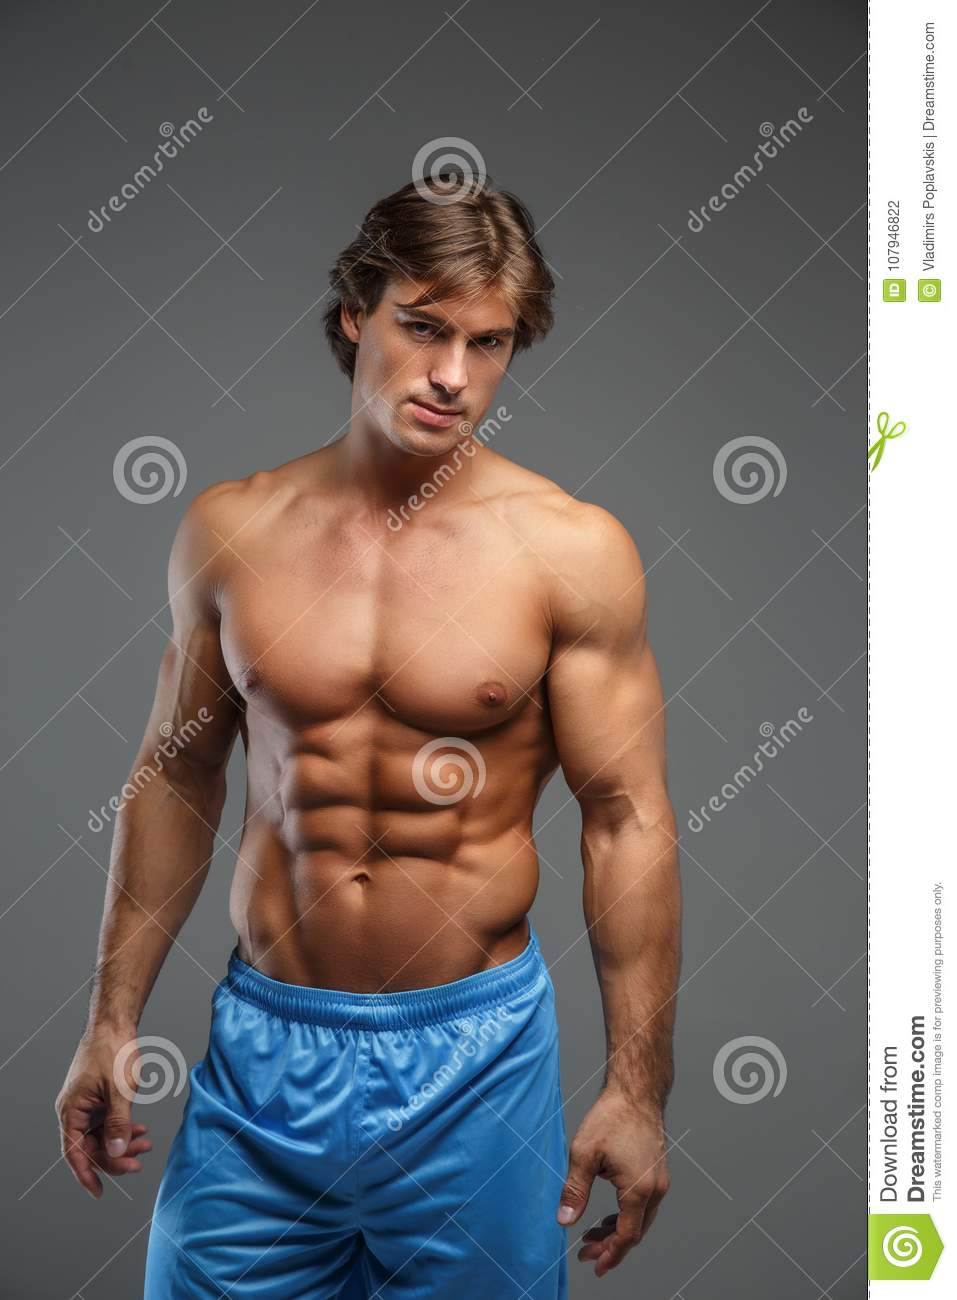 f7d250e2ec5 Strong Muscular Man In Blue Shorts. Stock Photo - Image of caucasian ...